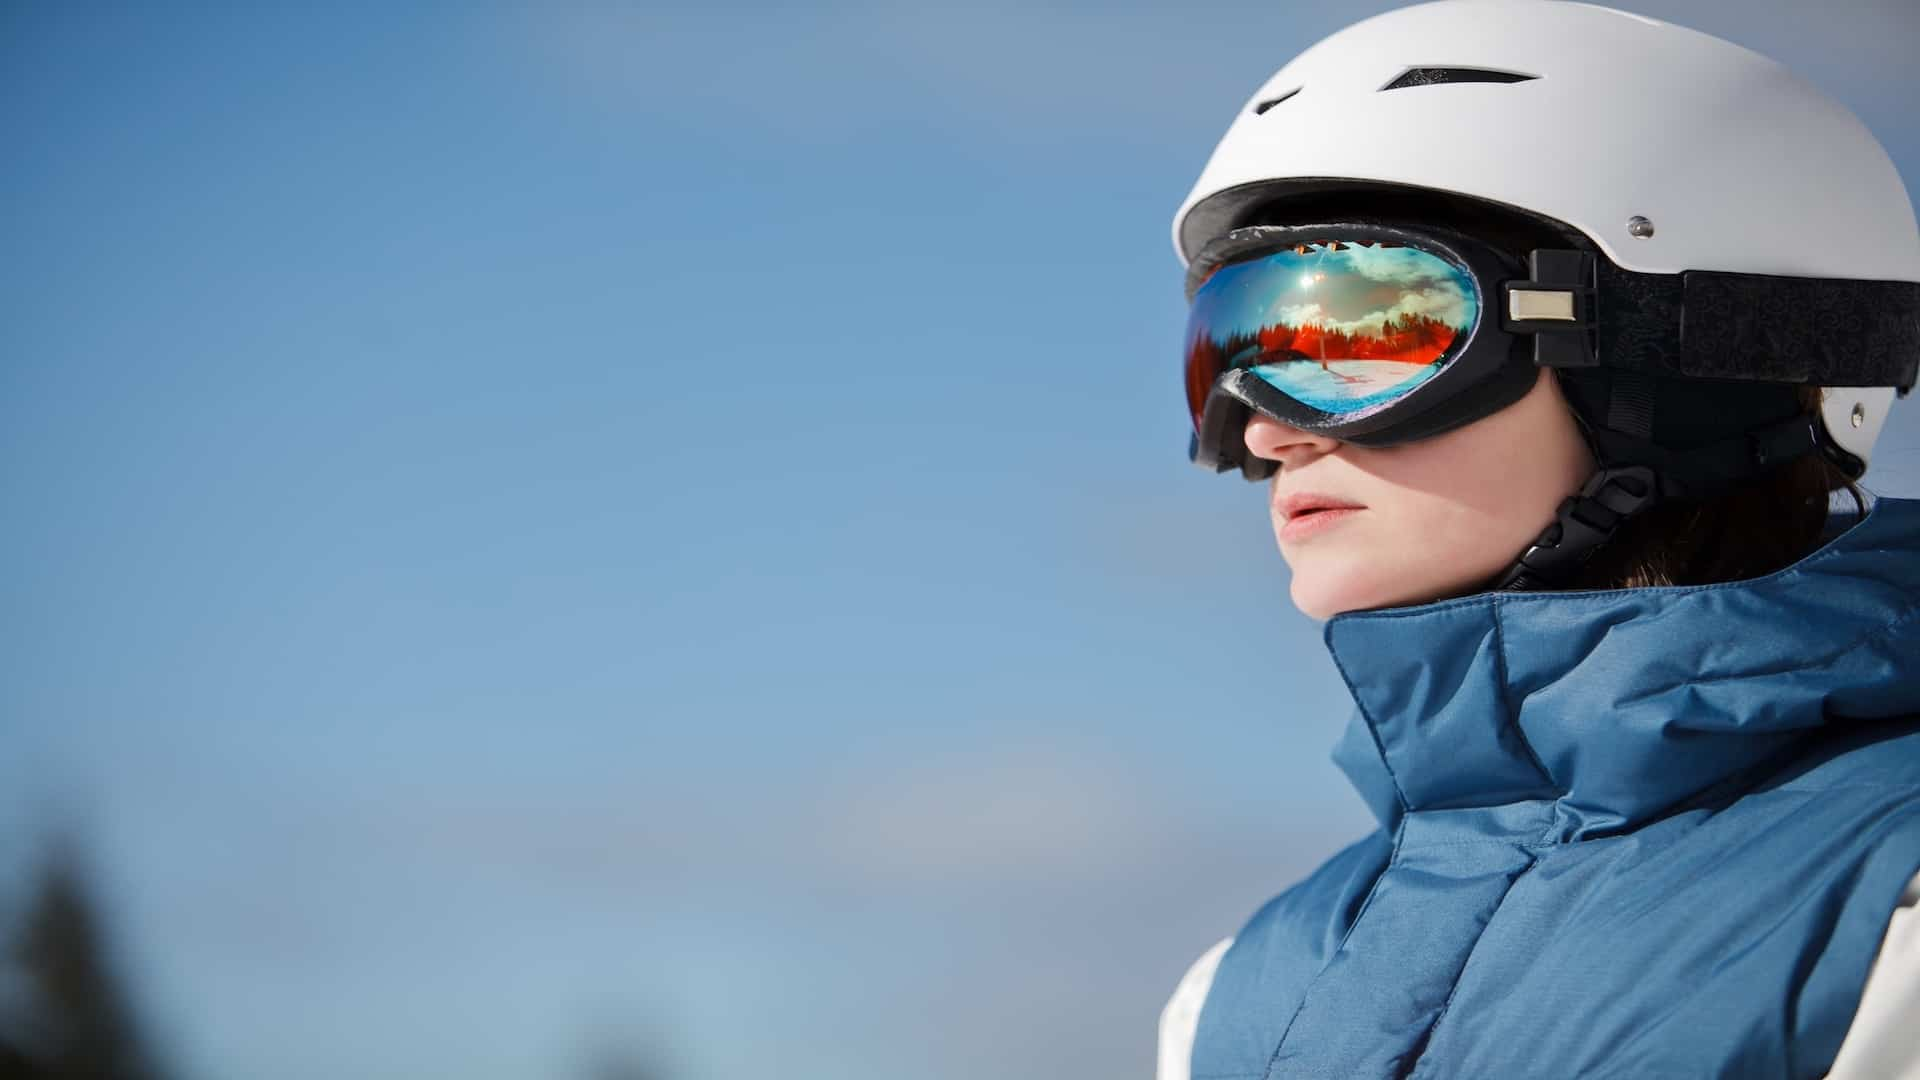 Best Ski Goggles 2021: Shopping Guide & Review